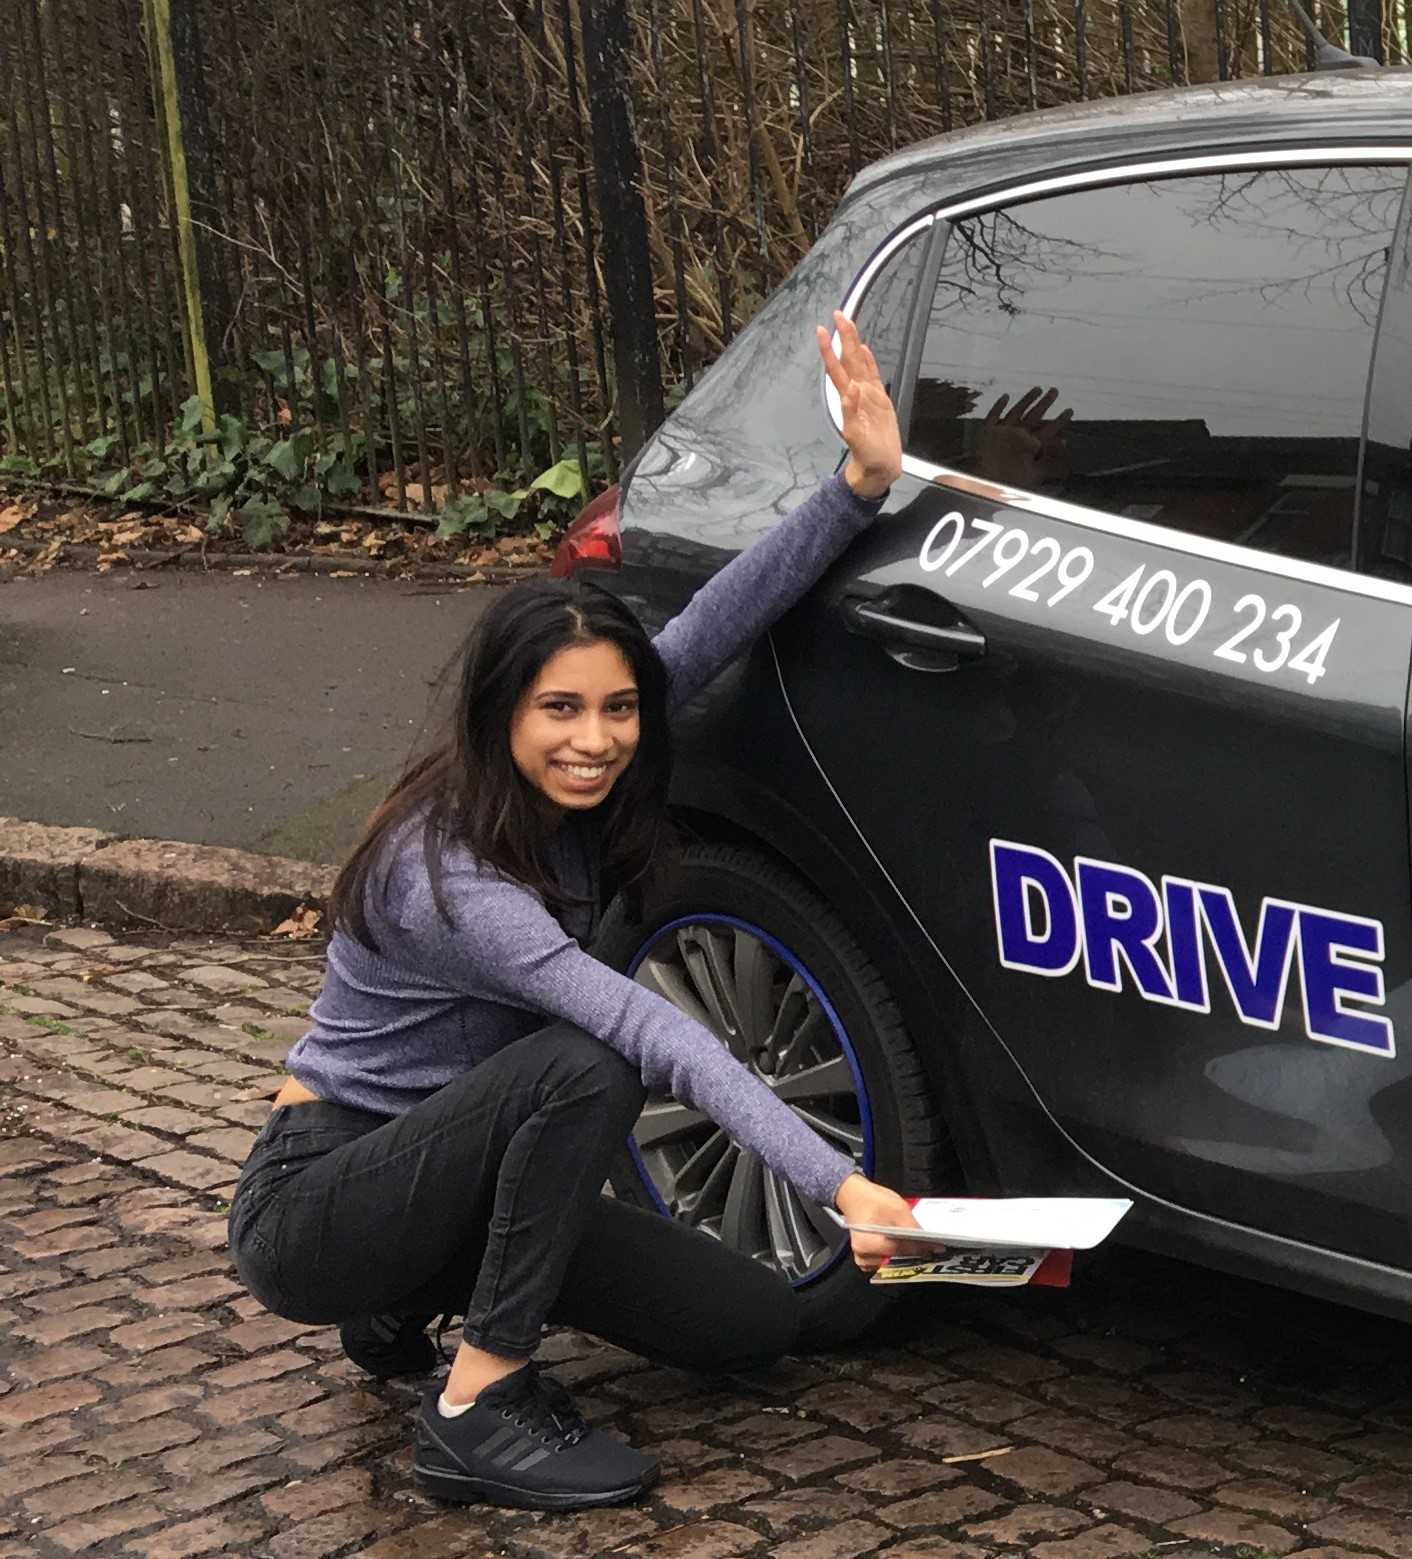 driving lessons leicester - Panchal Driving Academy - Zara